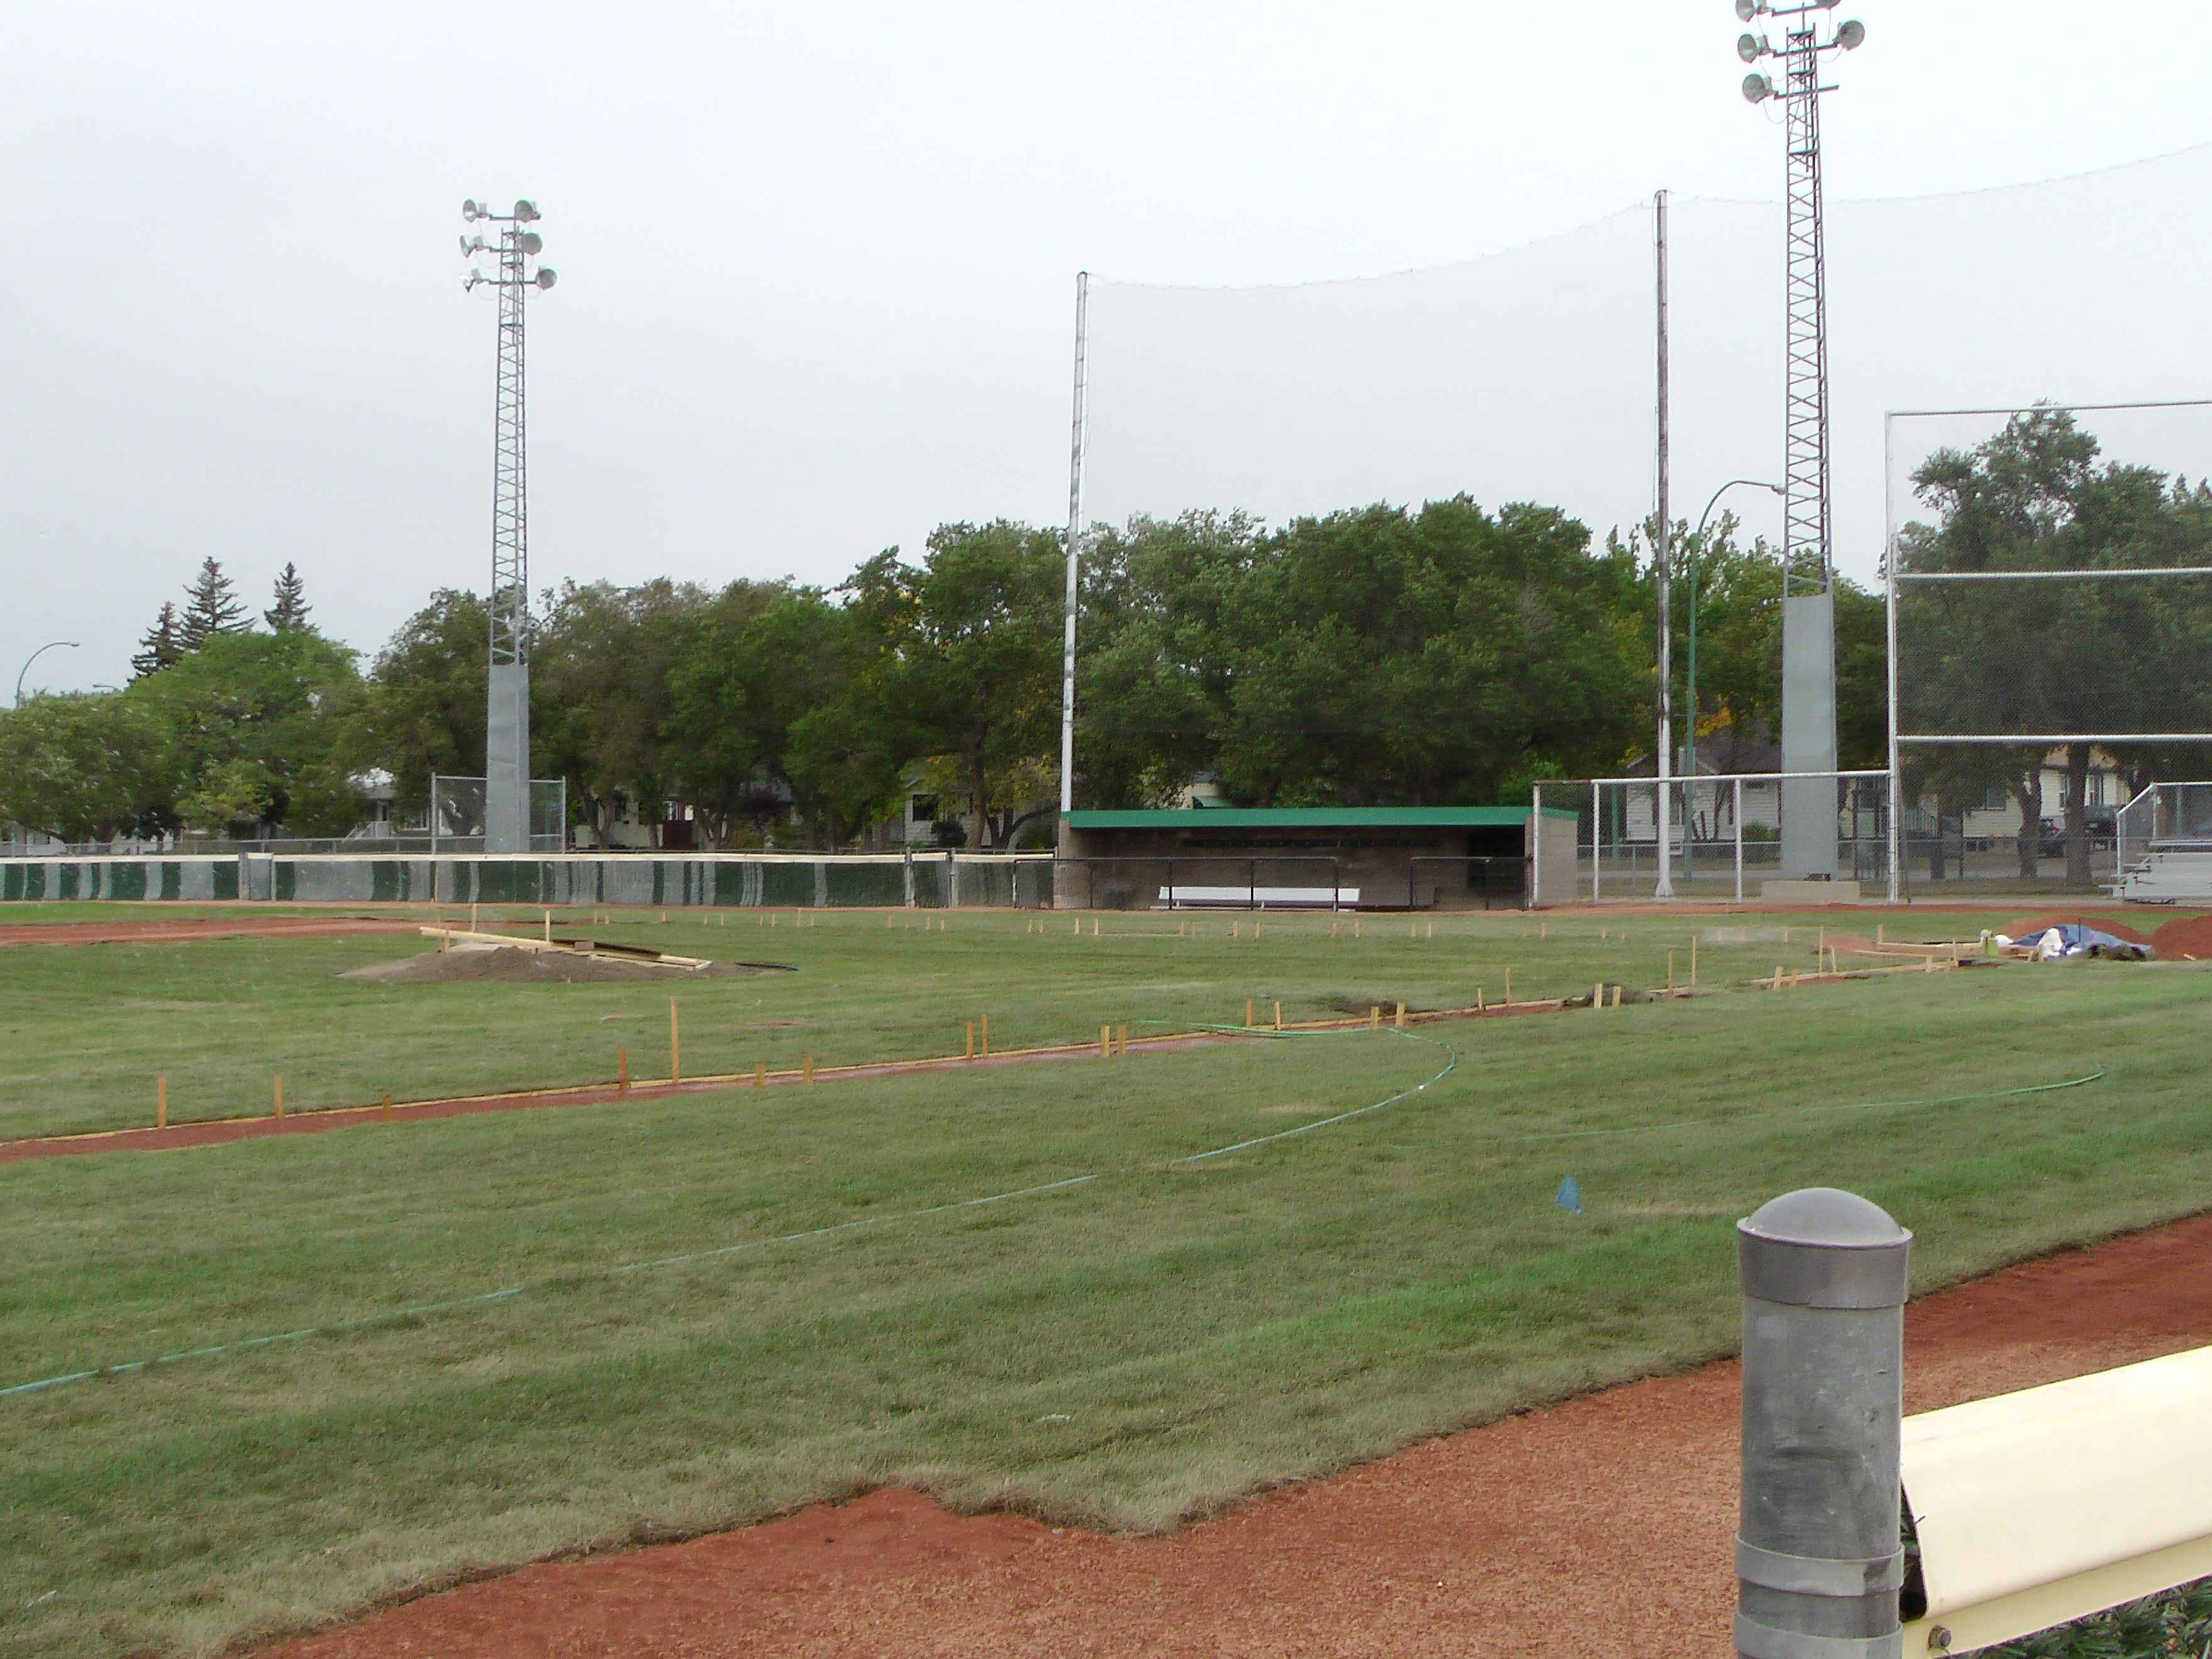 Sept 7 & 8 2018, Optimist Park Field Renovations, sod down being watered - Image 27